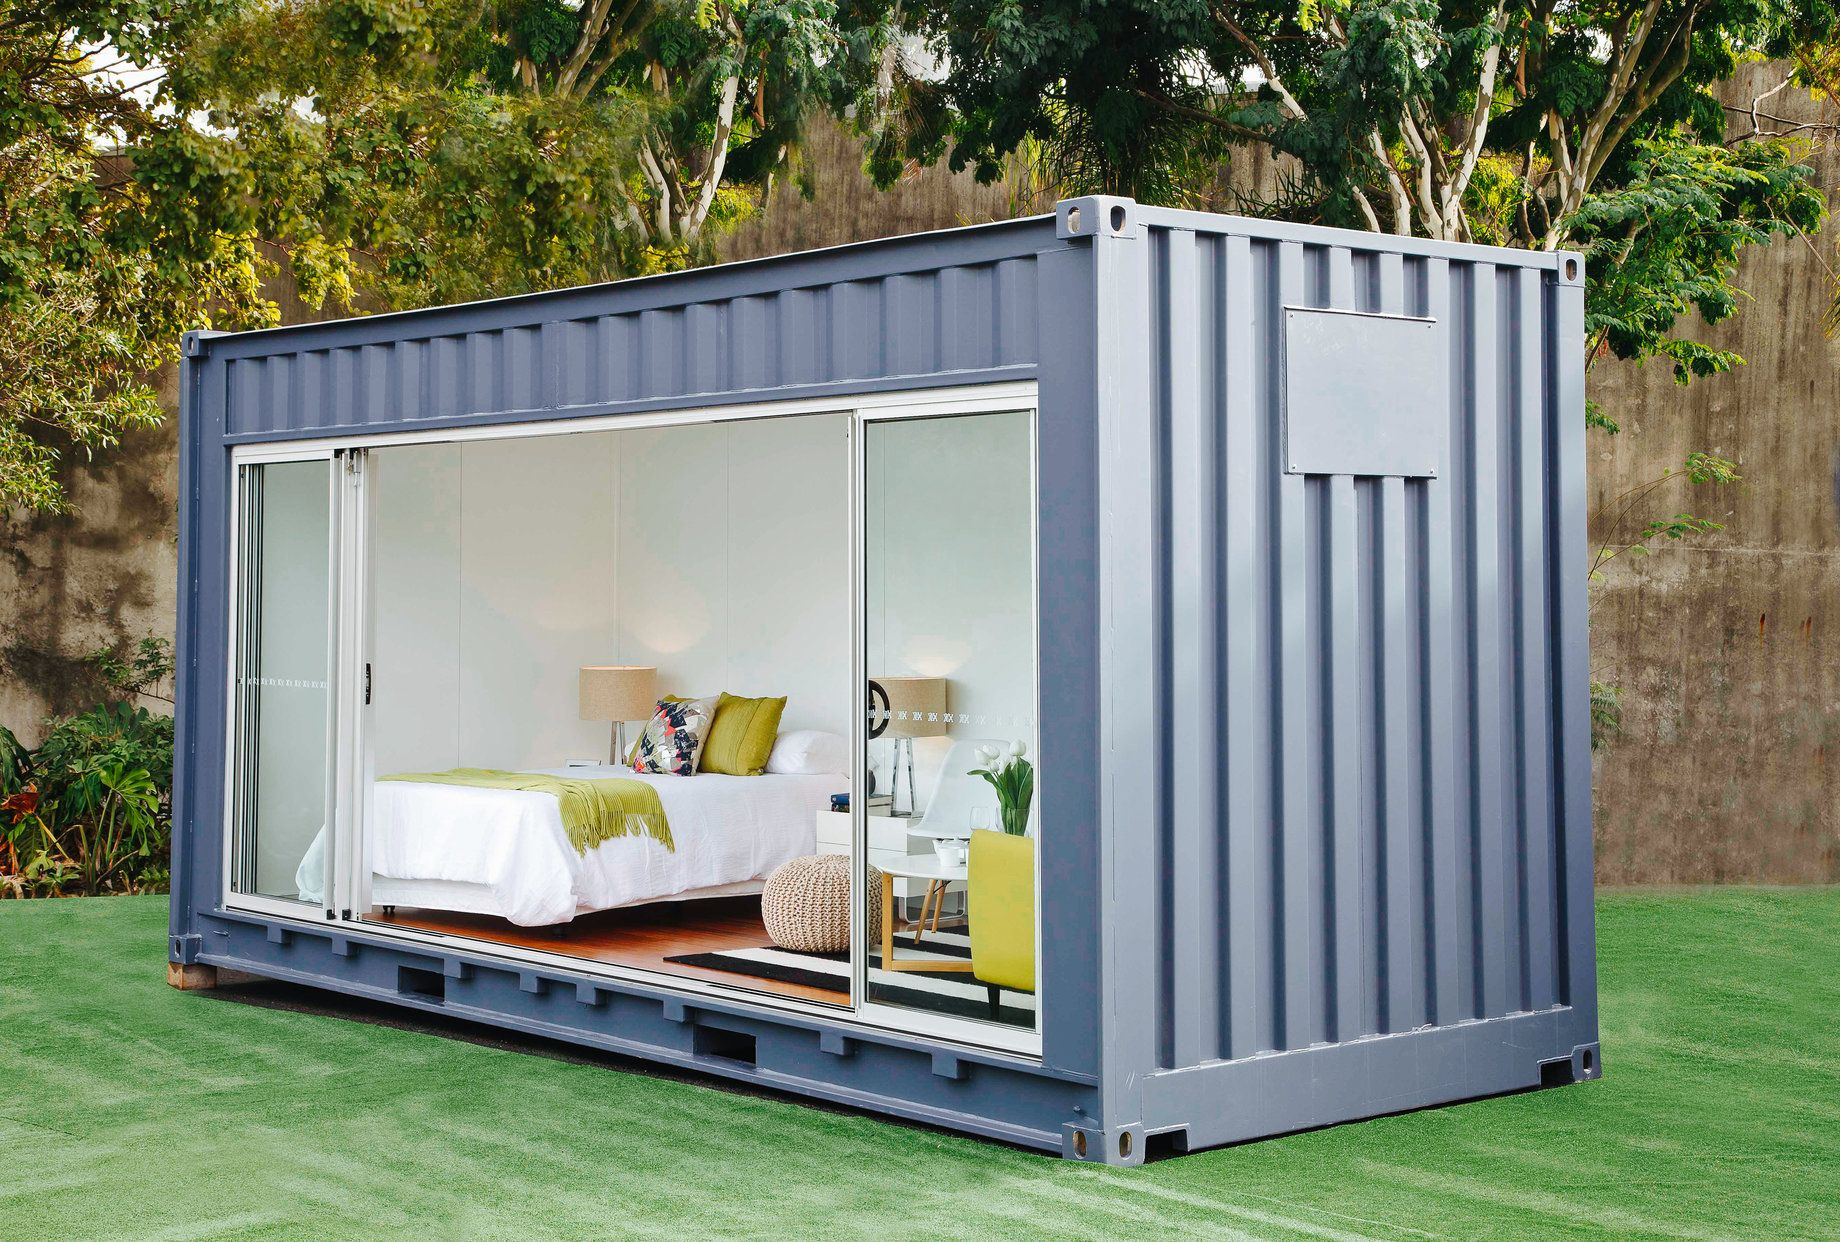 20 Cool As Hell Shipping Container Homes | Ships, Tiny houses and